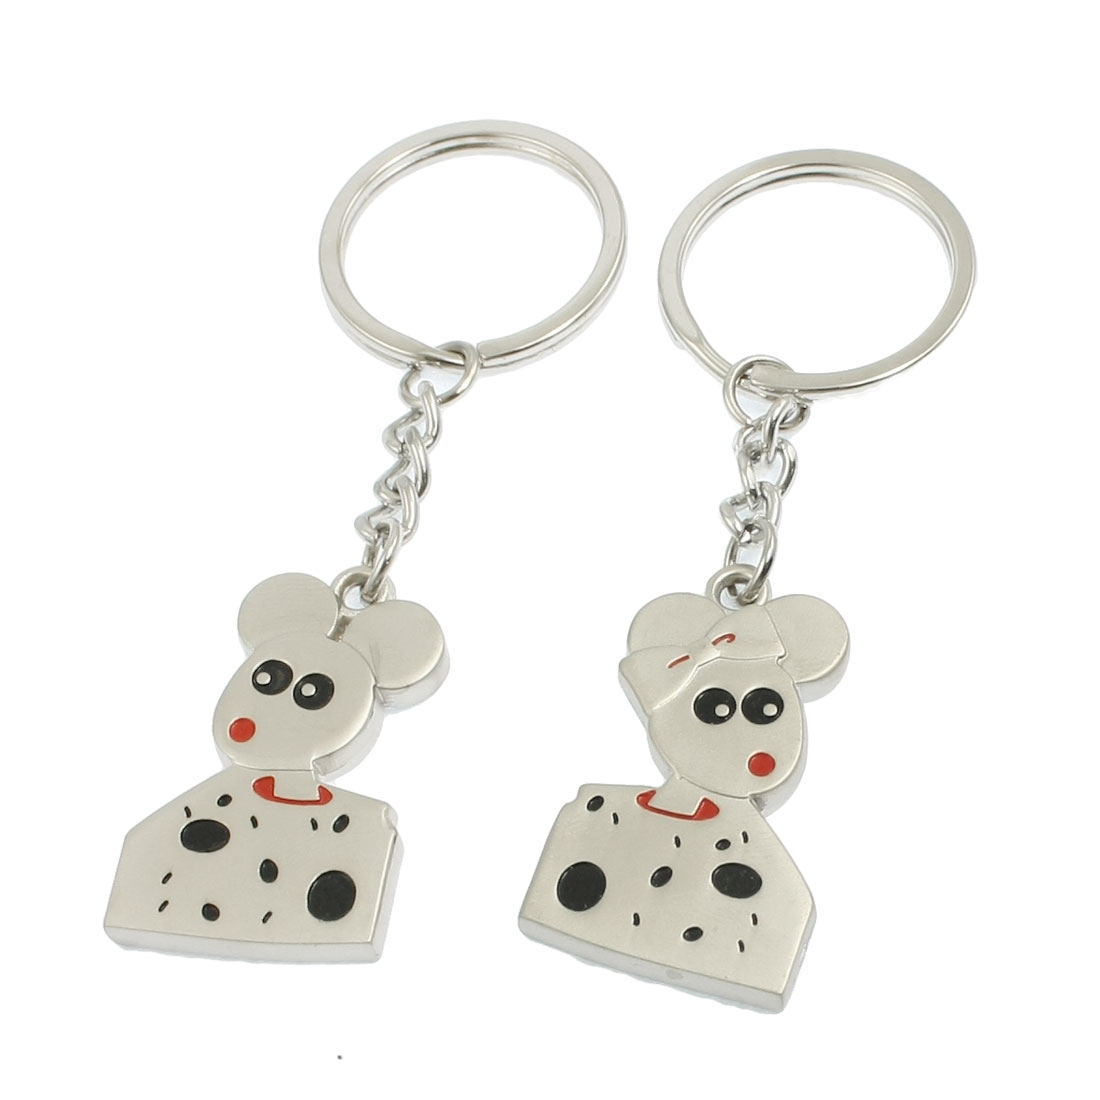 2 Pcs Mouse Pendent Design Keyrings Key Holder for Lover